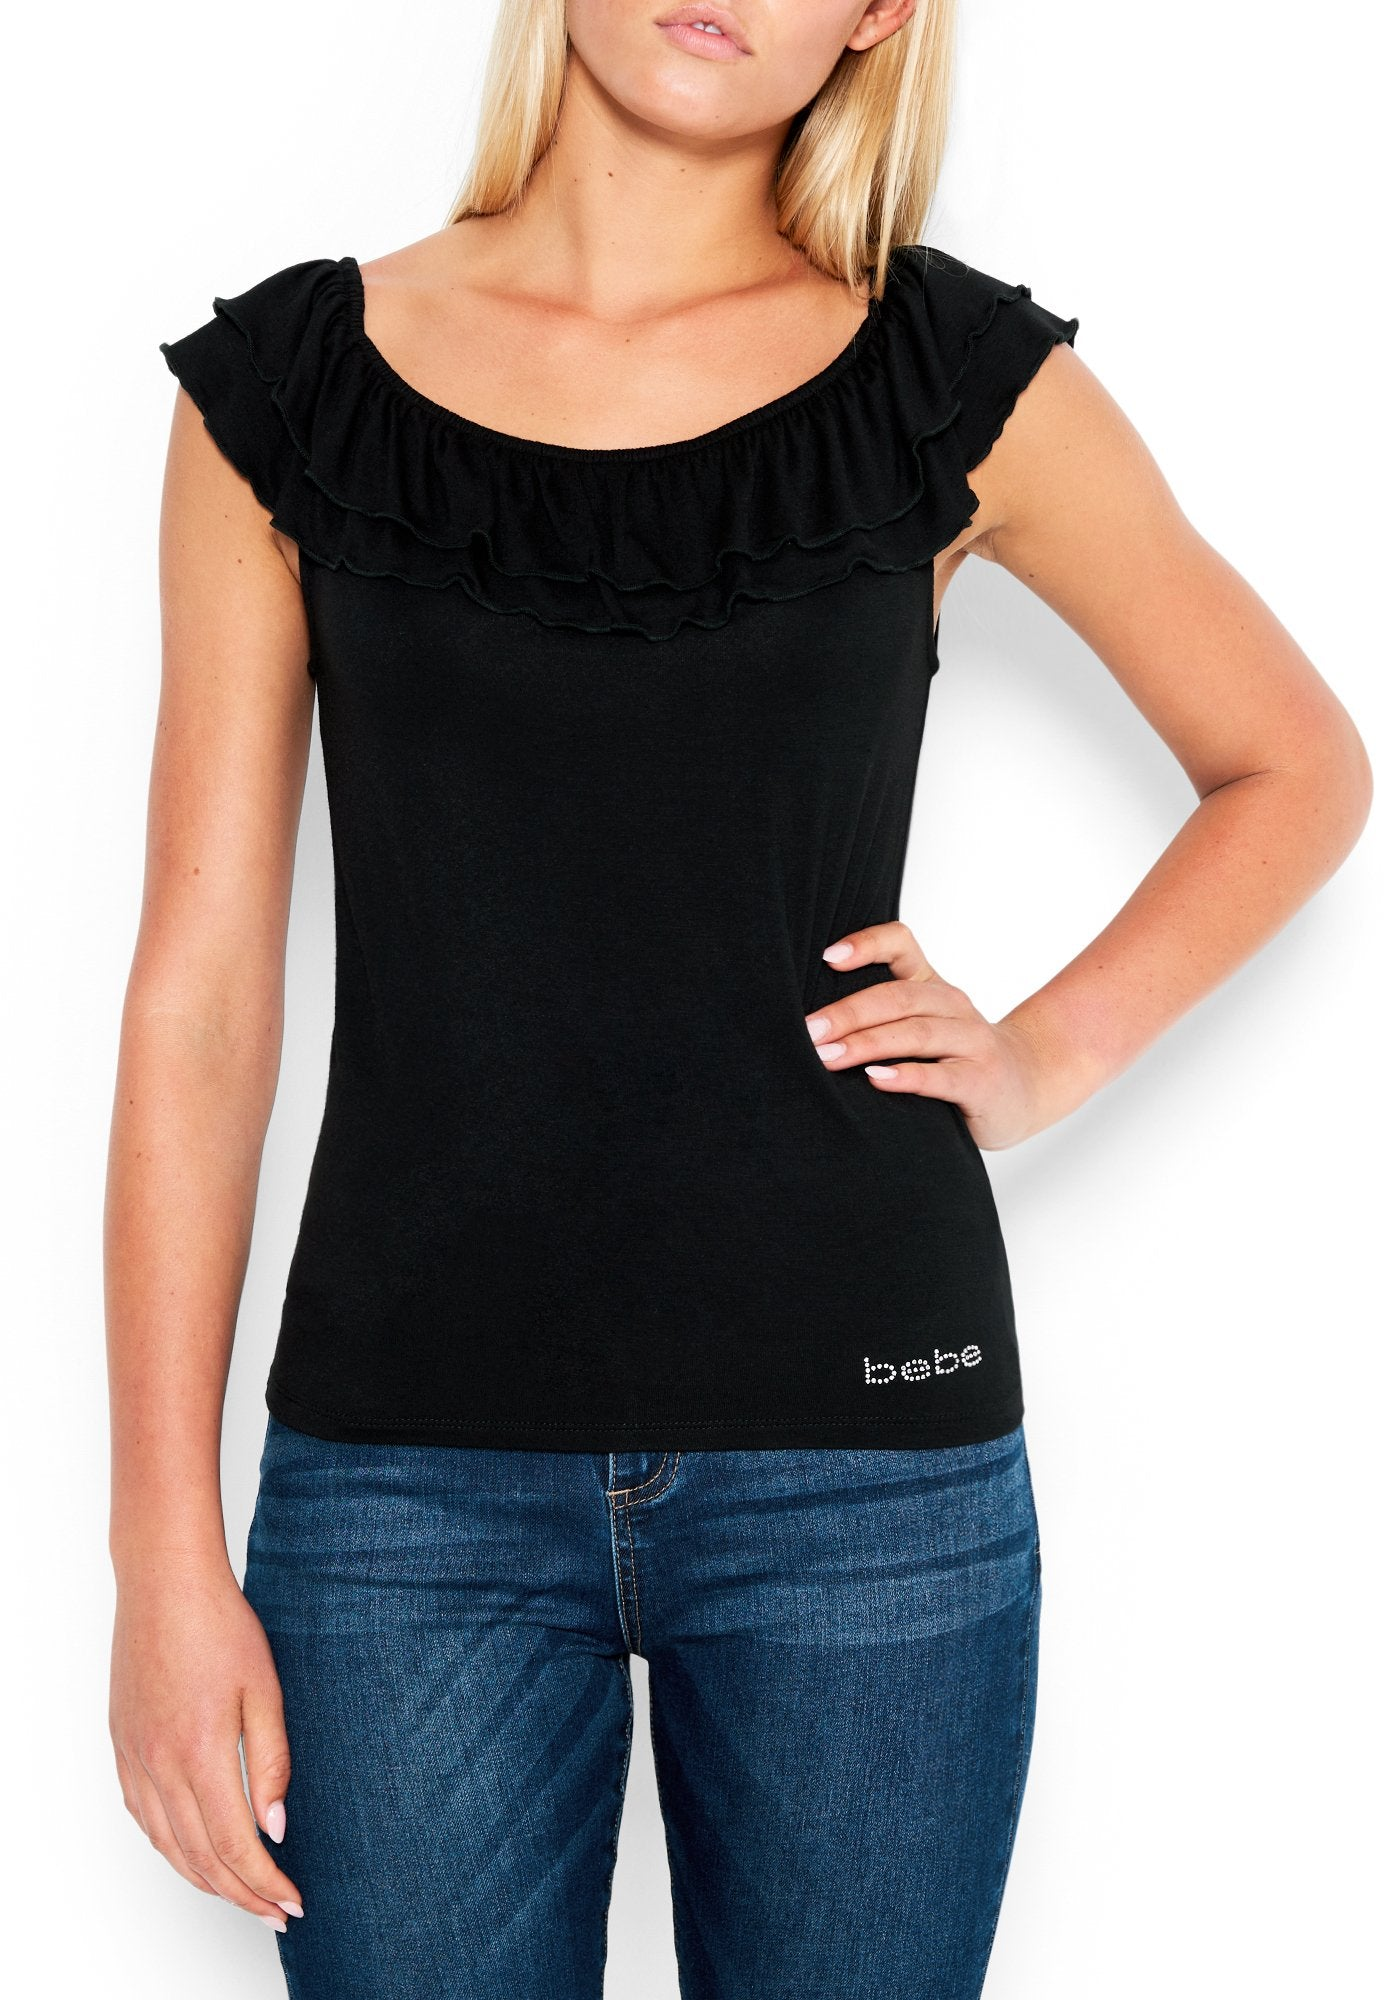 Image of Women's Bebe Logo Ruffle Off Shoulder Top, Size Small in BLACK Spandex